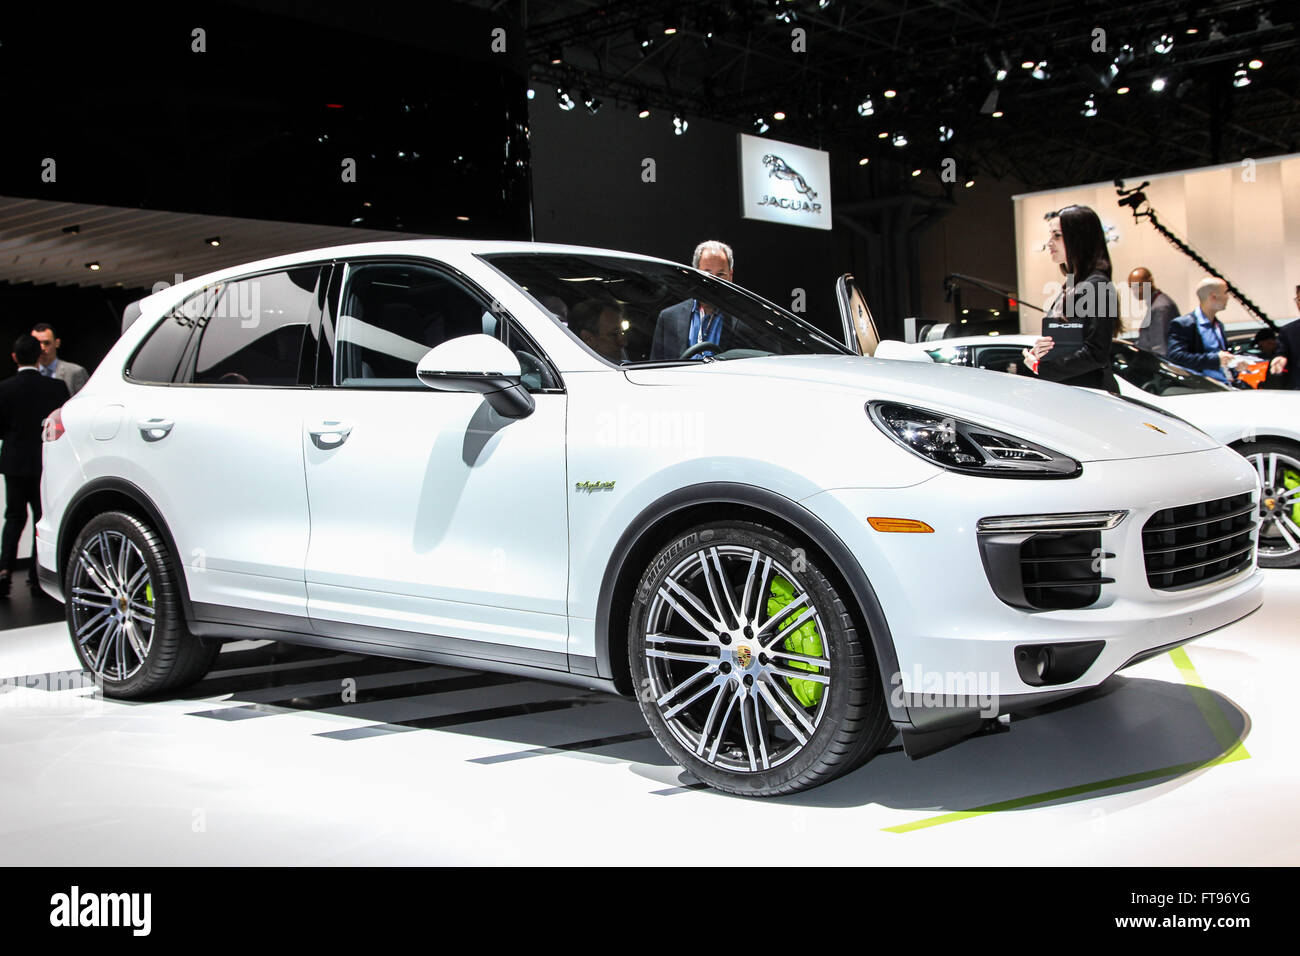 23rd mar 2016 a porsche cayenne s e hybrid shown at the new york international auto show 2016 at the jacob javits center this was press preview day one